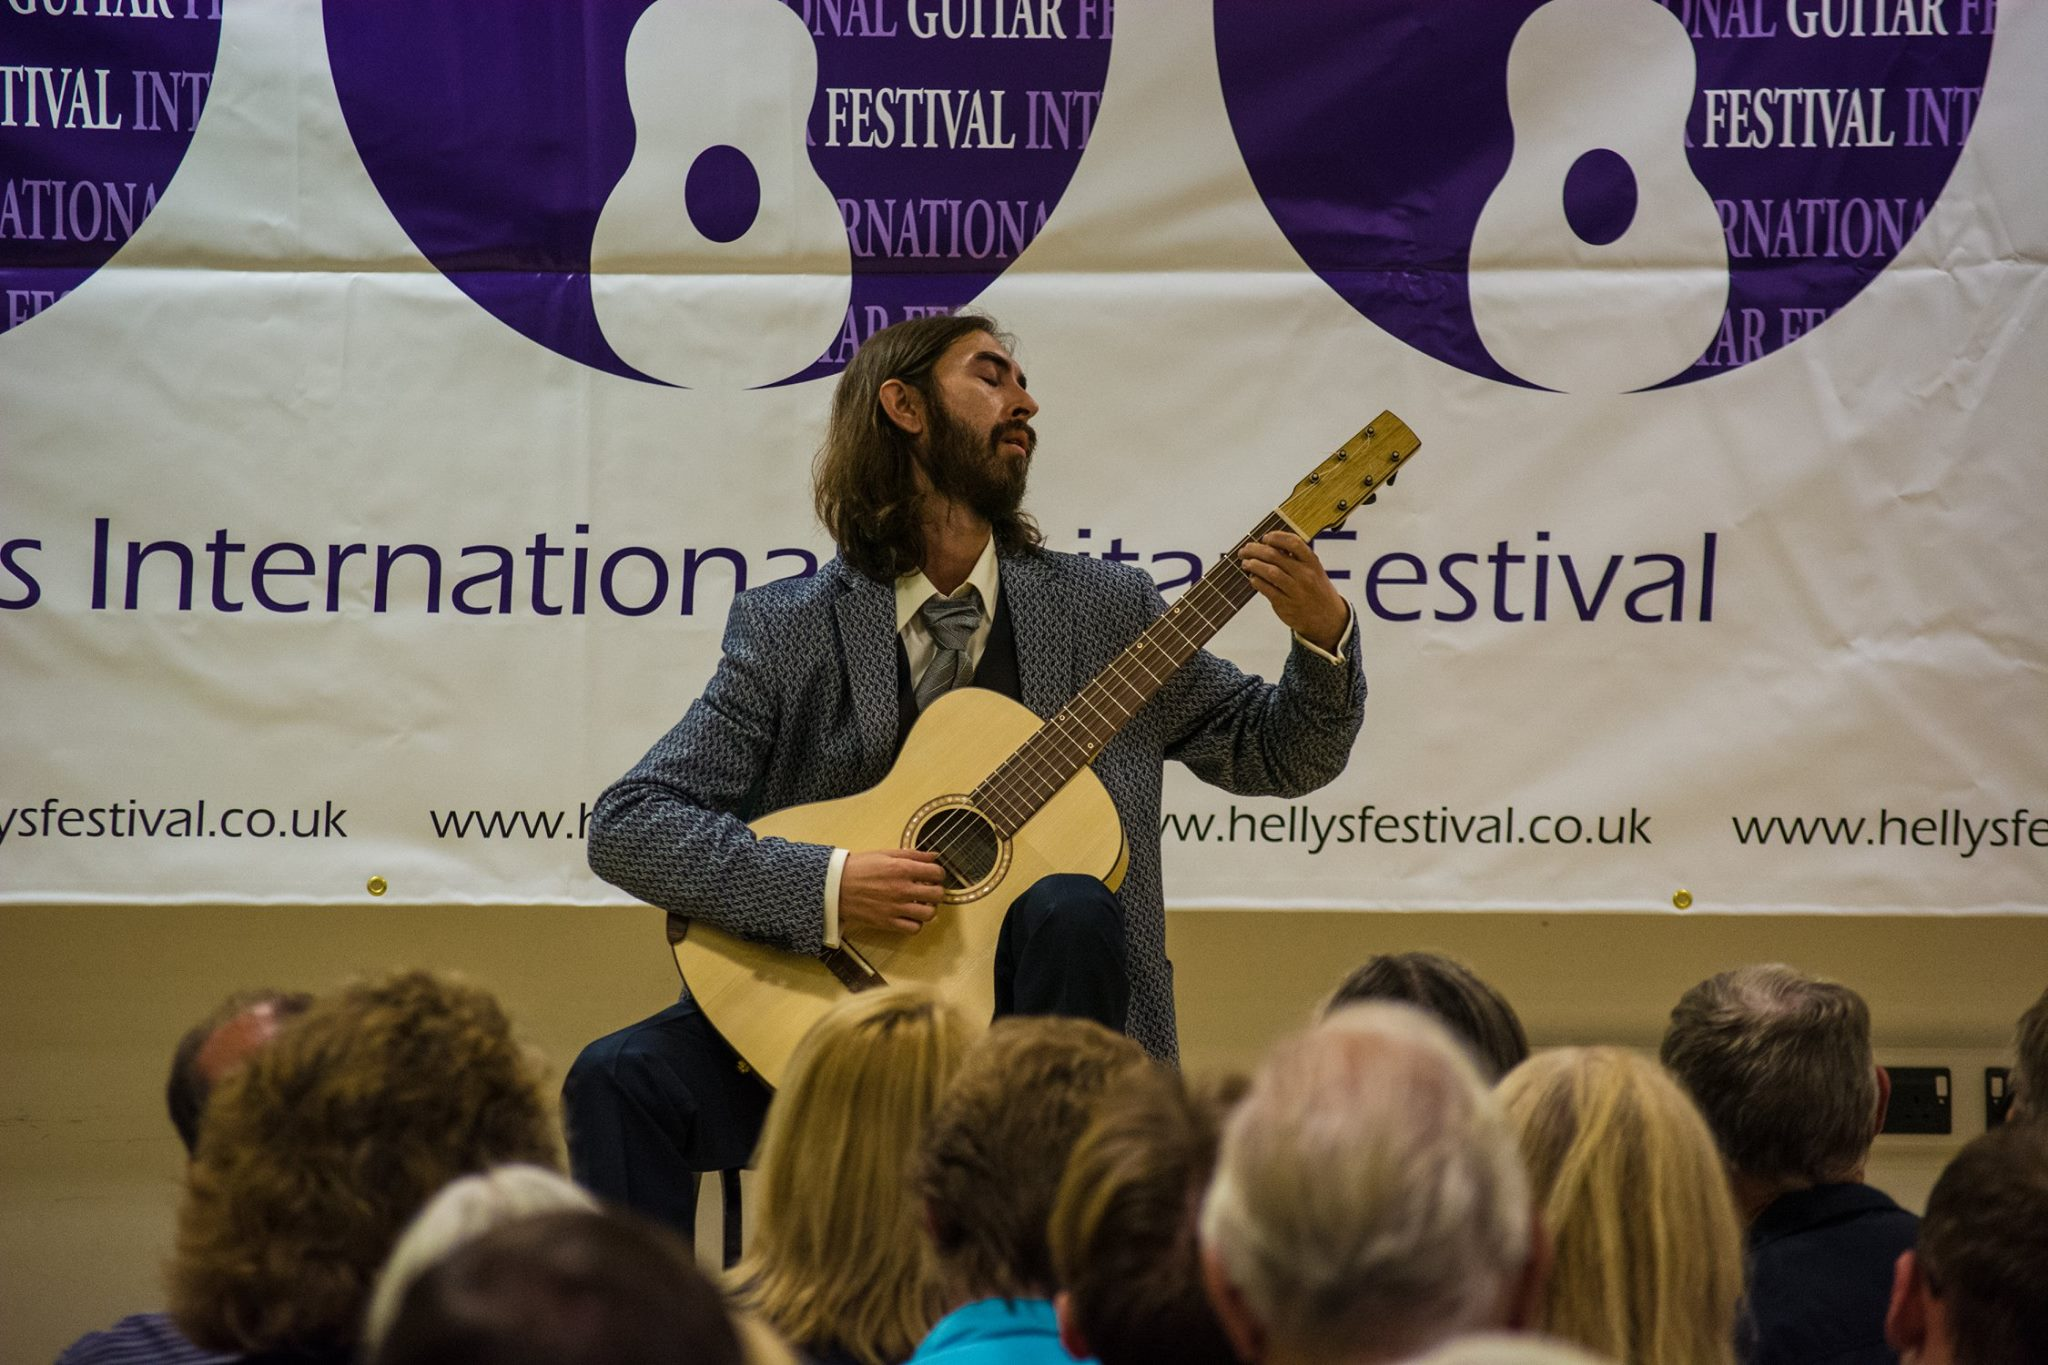 Pablo Rodriguez at Hellys Guitar Festival